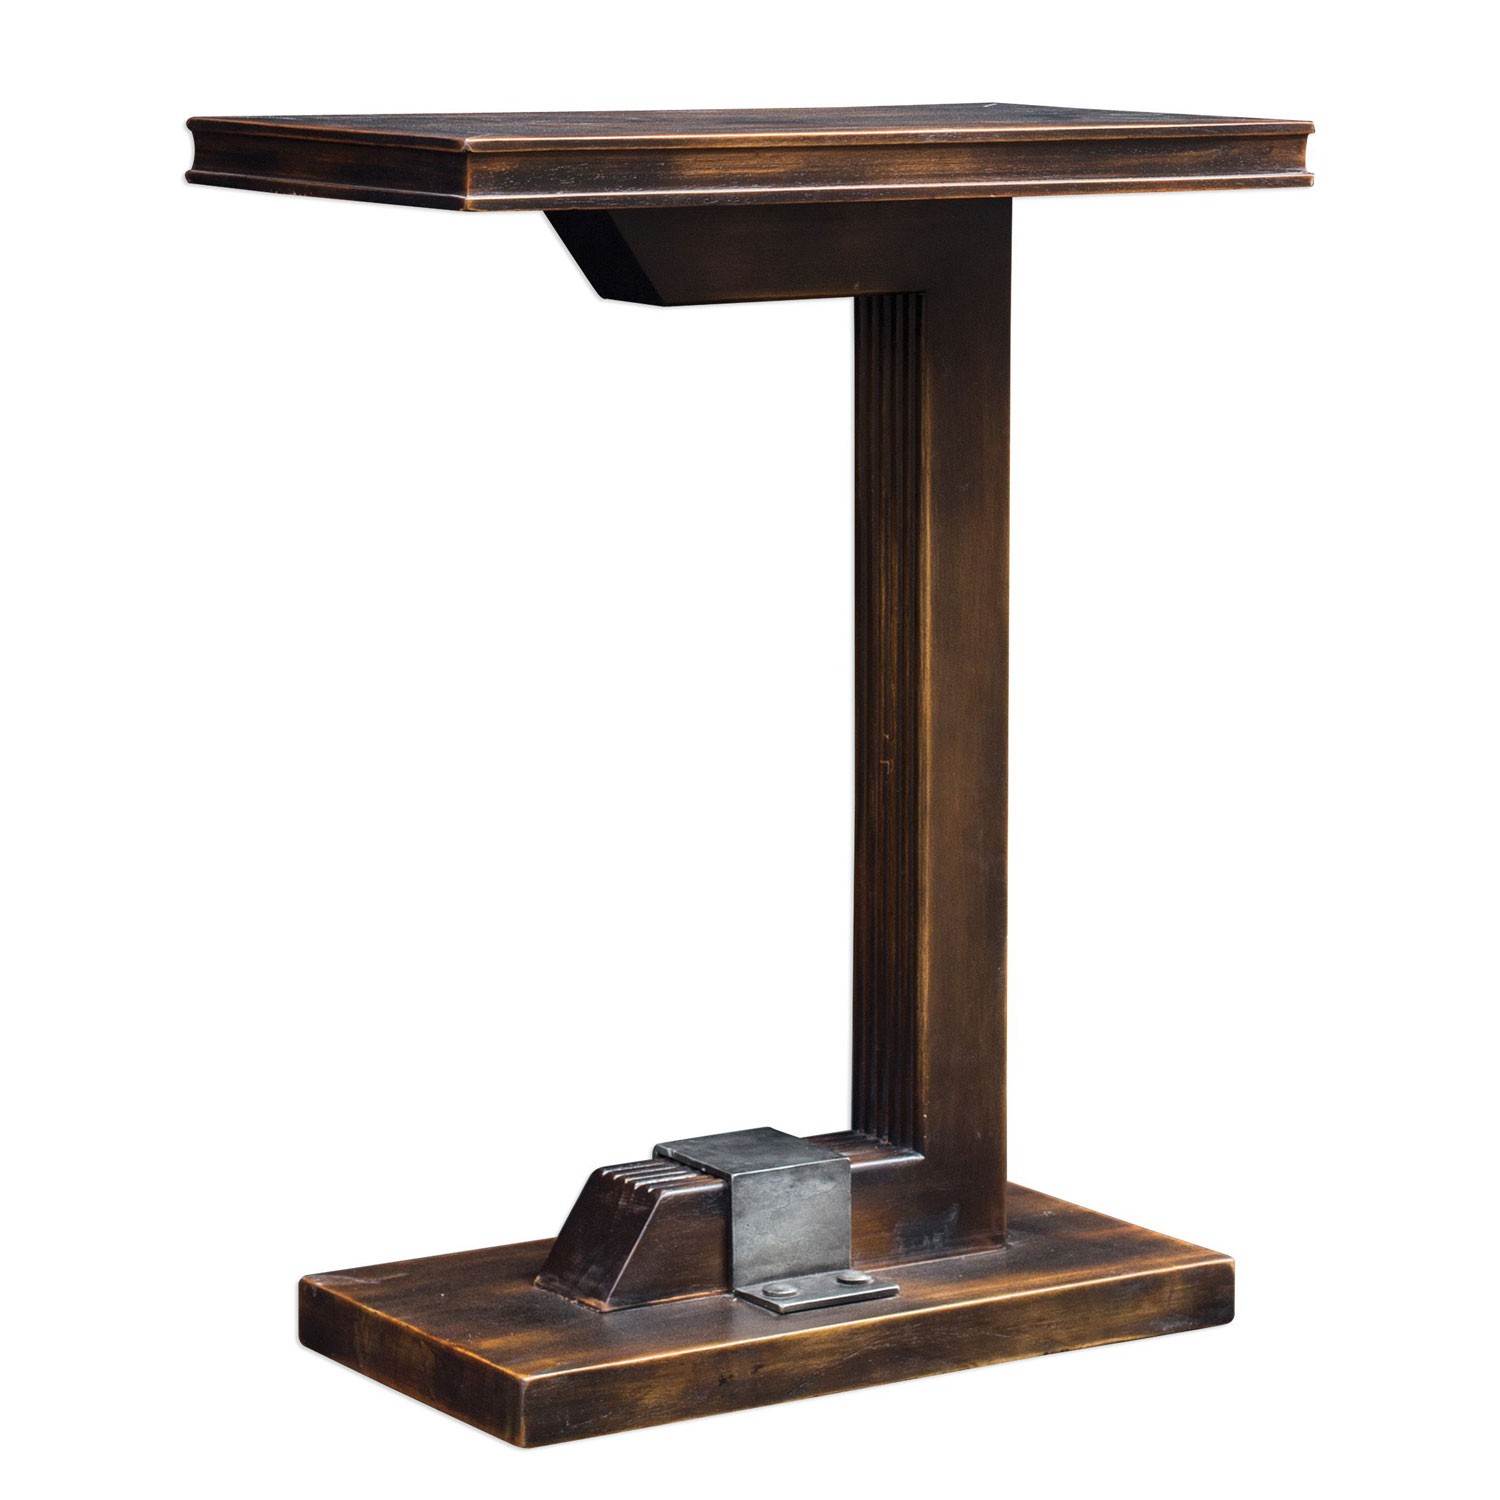 uttermost deacon industrial accent table bellacor hover zoom concrete side crystal bedside lights outdoor seating couch ikea college dorm ping lucite pottery barn and chairs for